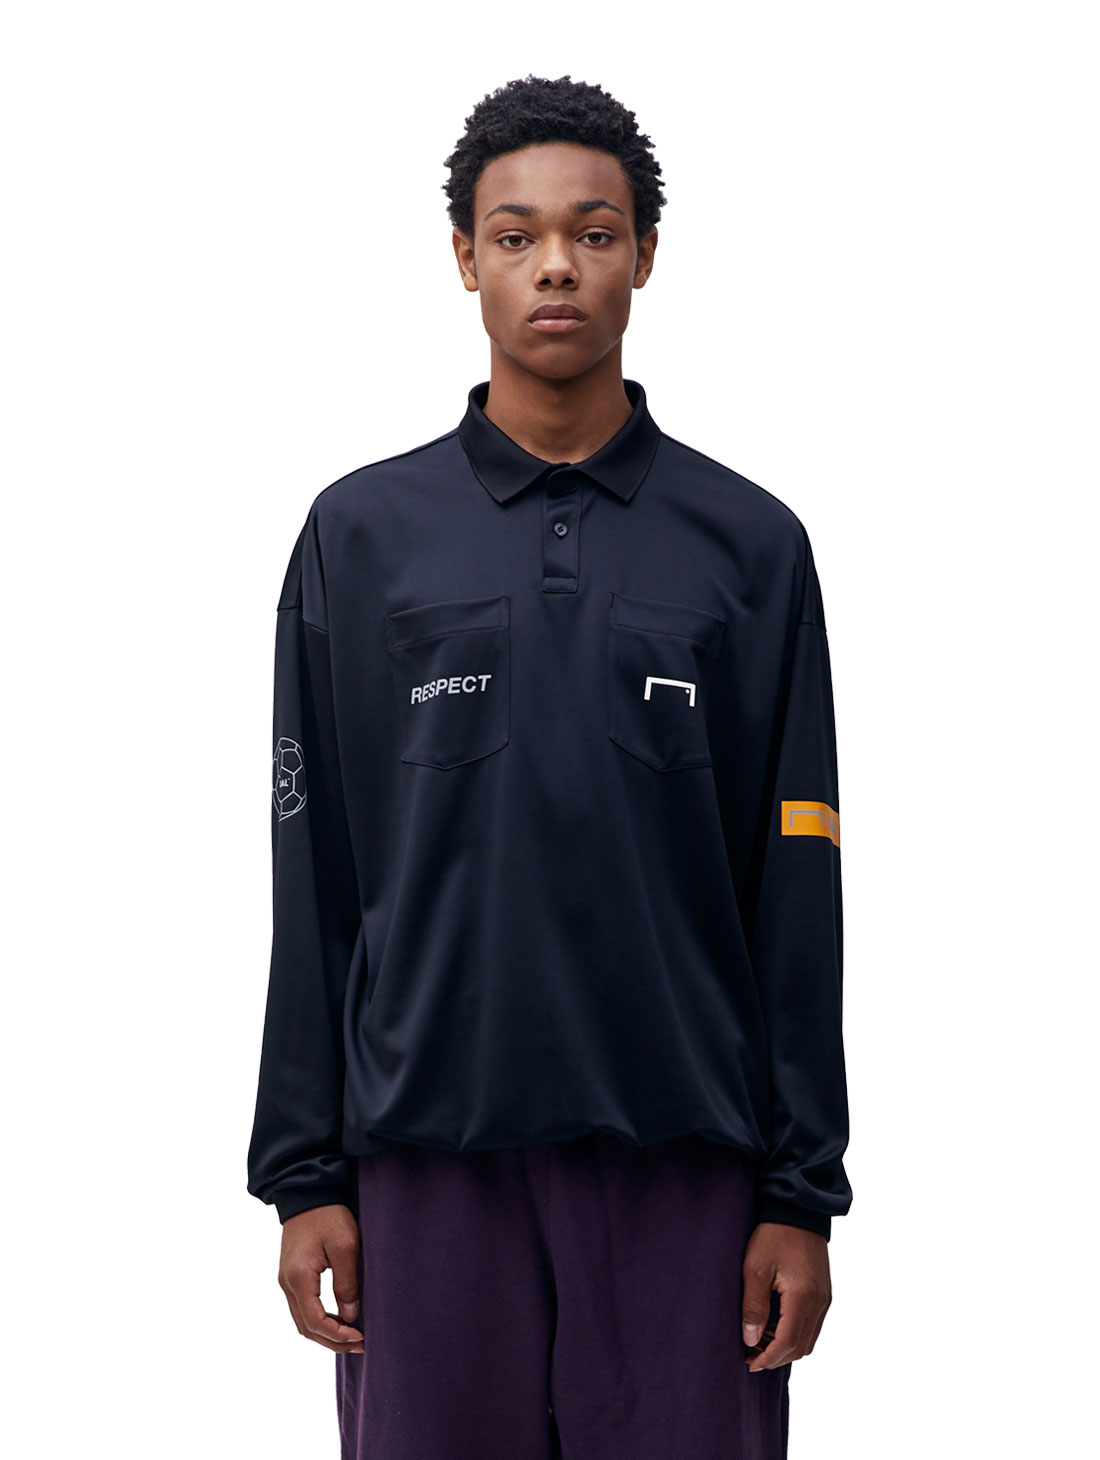 GOALSTUDIO RESPECT REFEREE SHIRT - BLACK